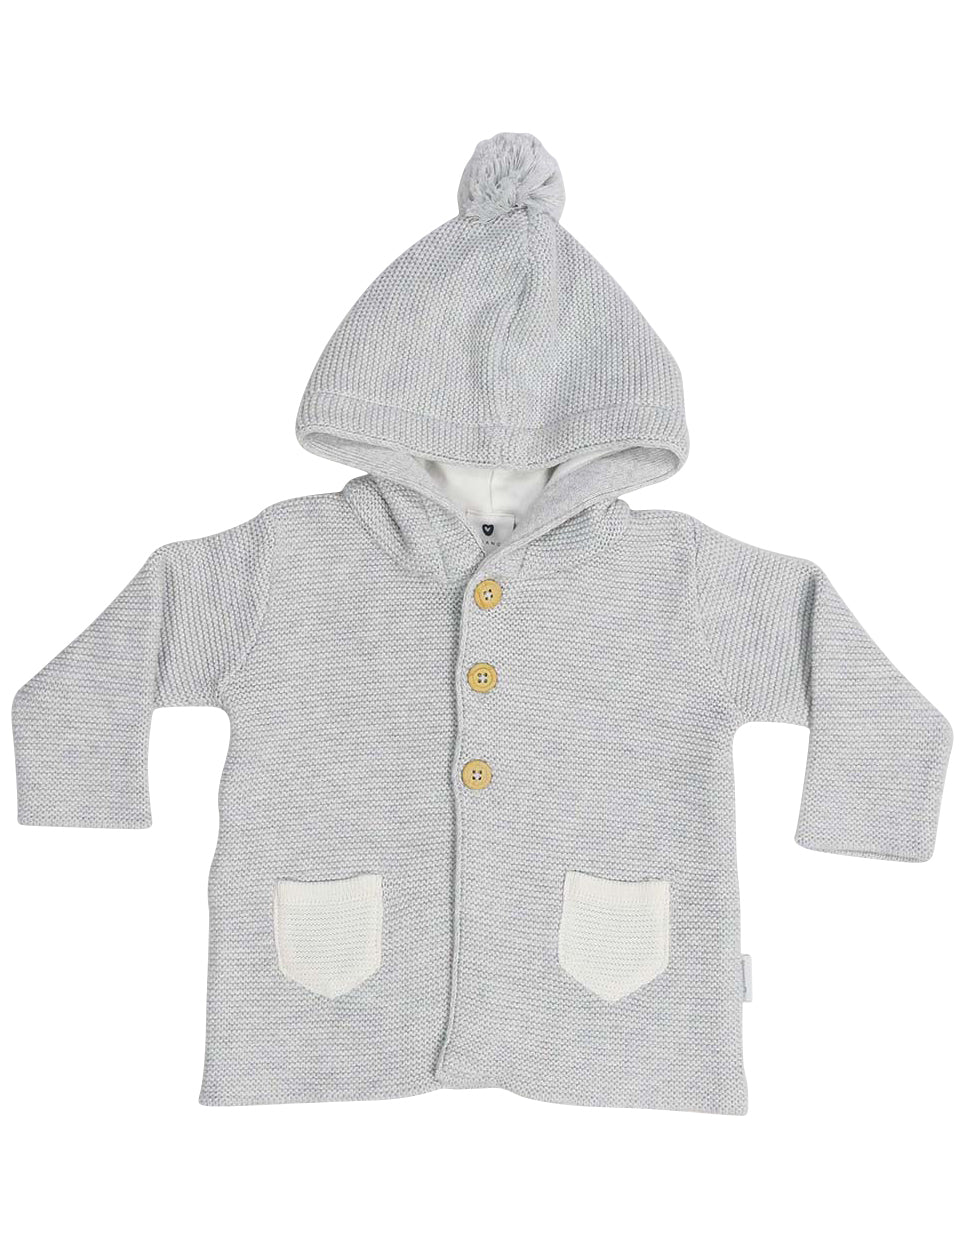 KORANGO Baa Baa White Sheep Hooded Knit Jacket with Contrast Pocket in Grey